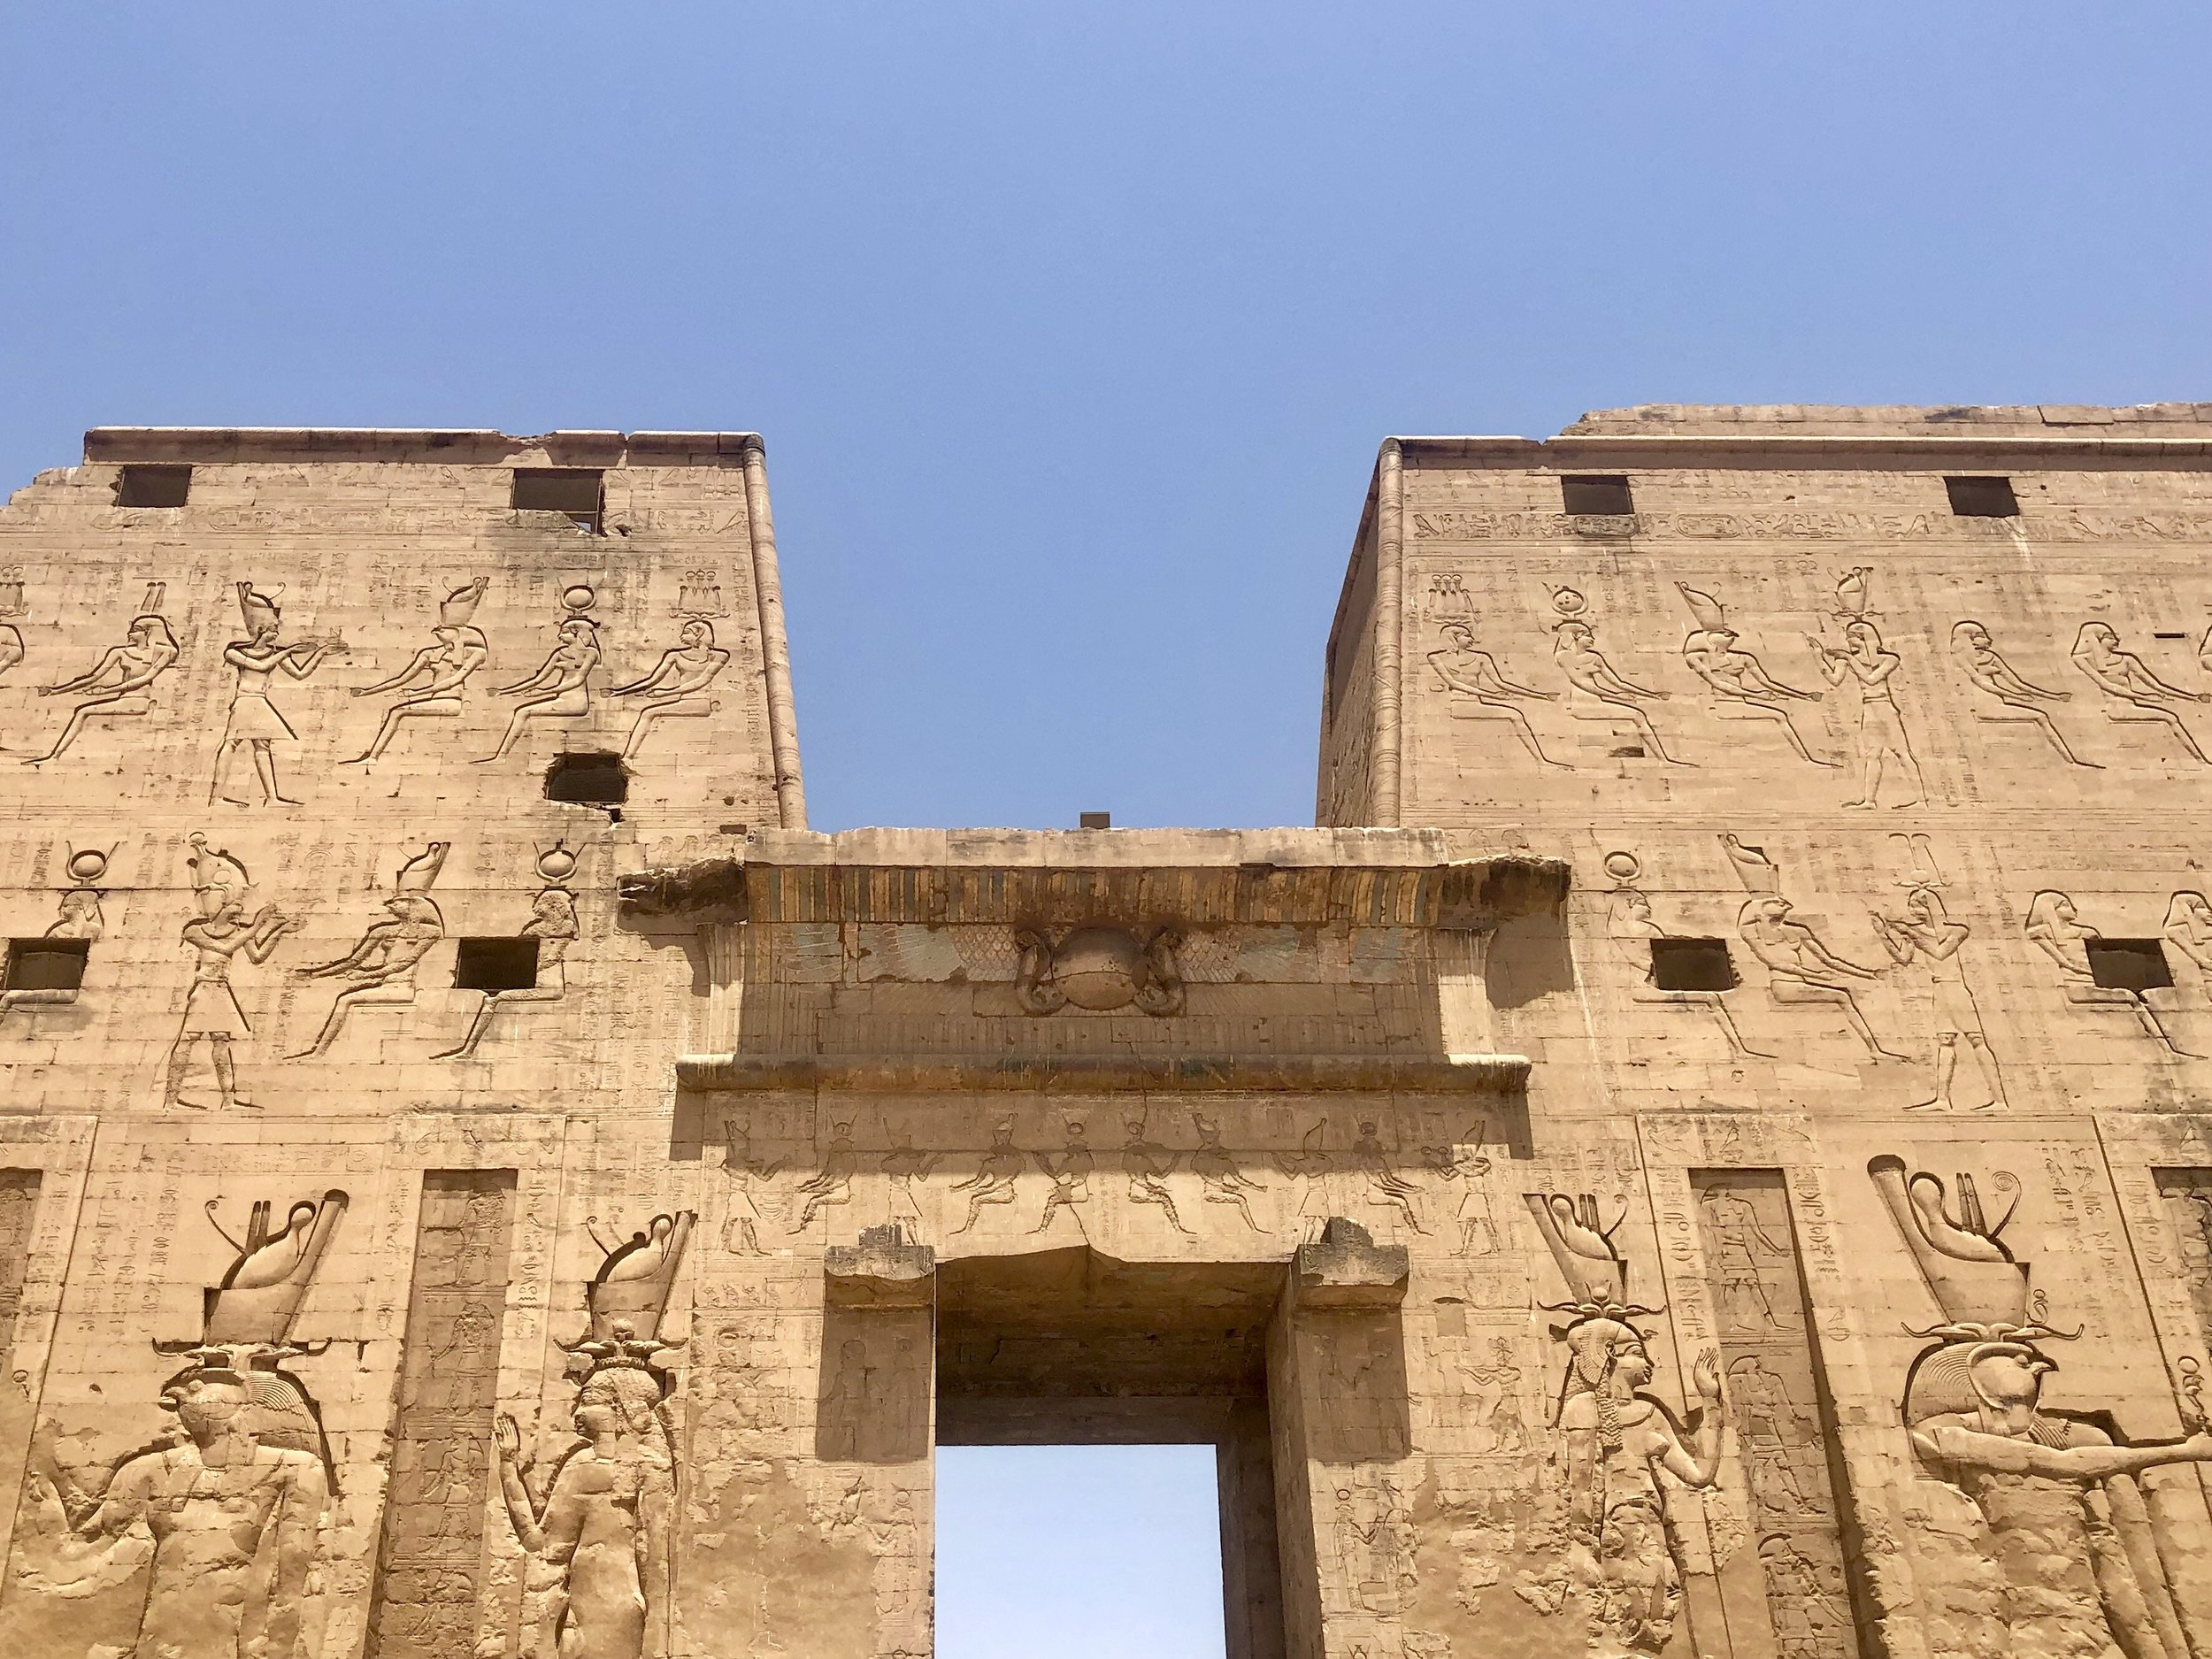 The Ptolemy rulers adopted Egyptian customs, including depicting themselves with the gods on the walls of temples